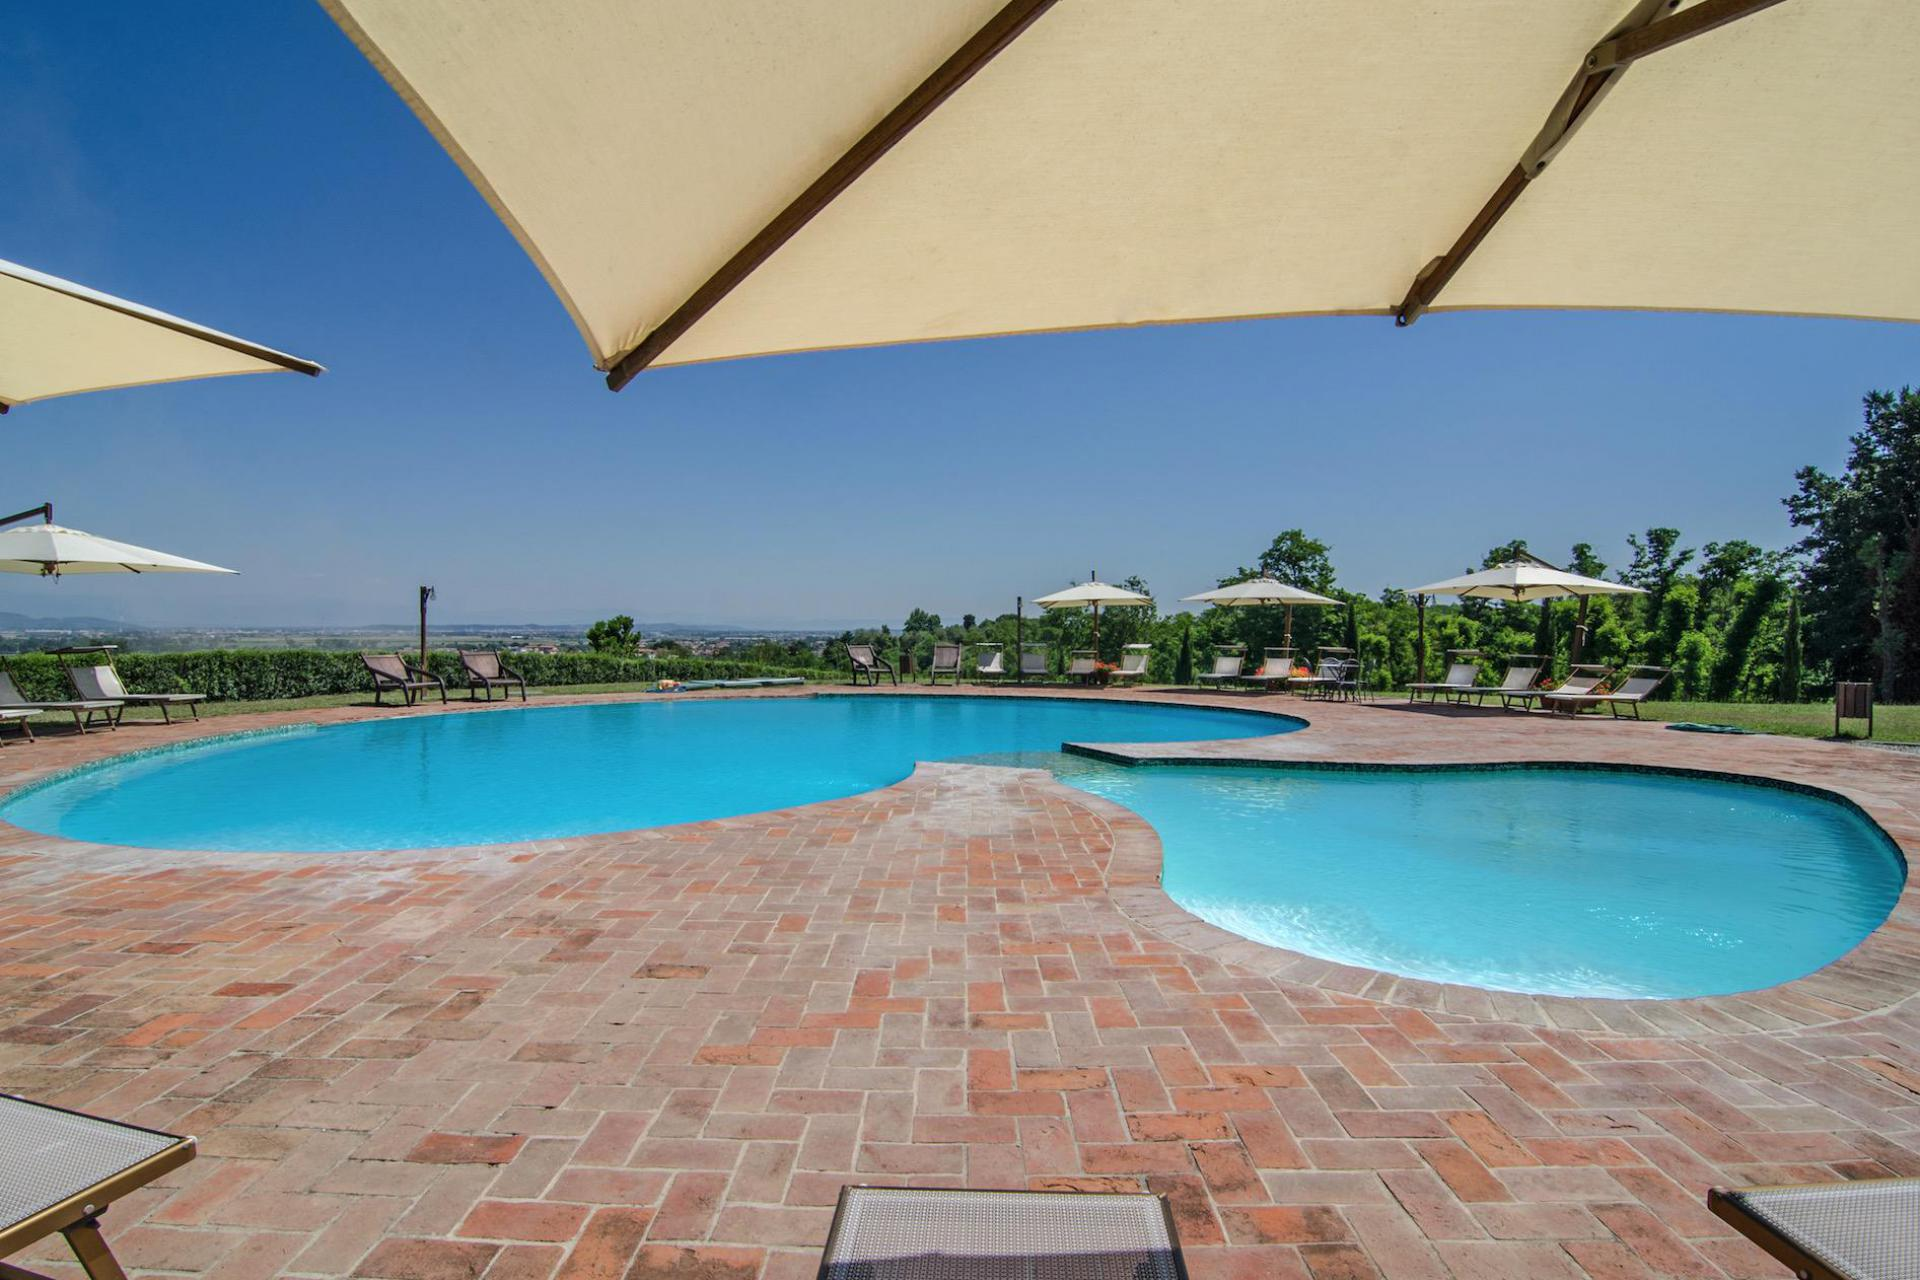 Agriturismo within walking distance of the sea